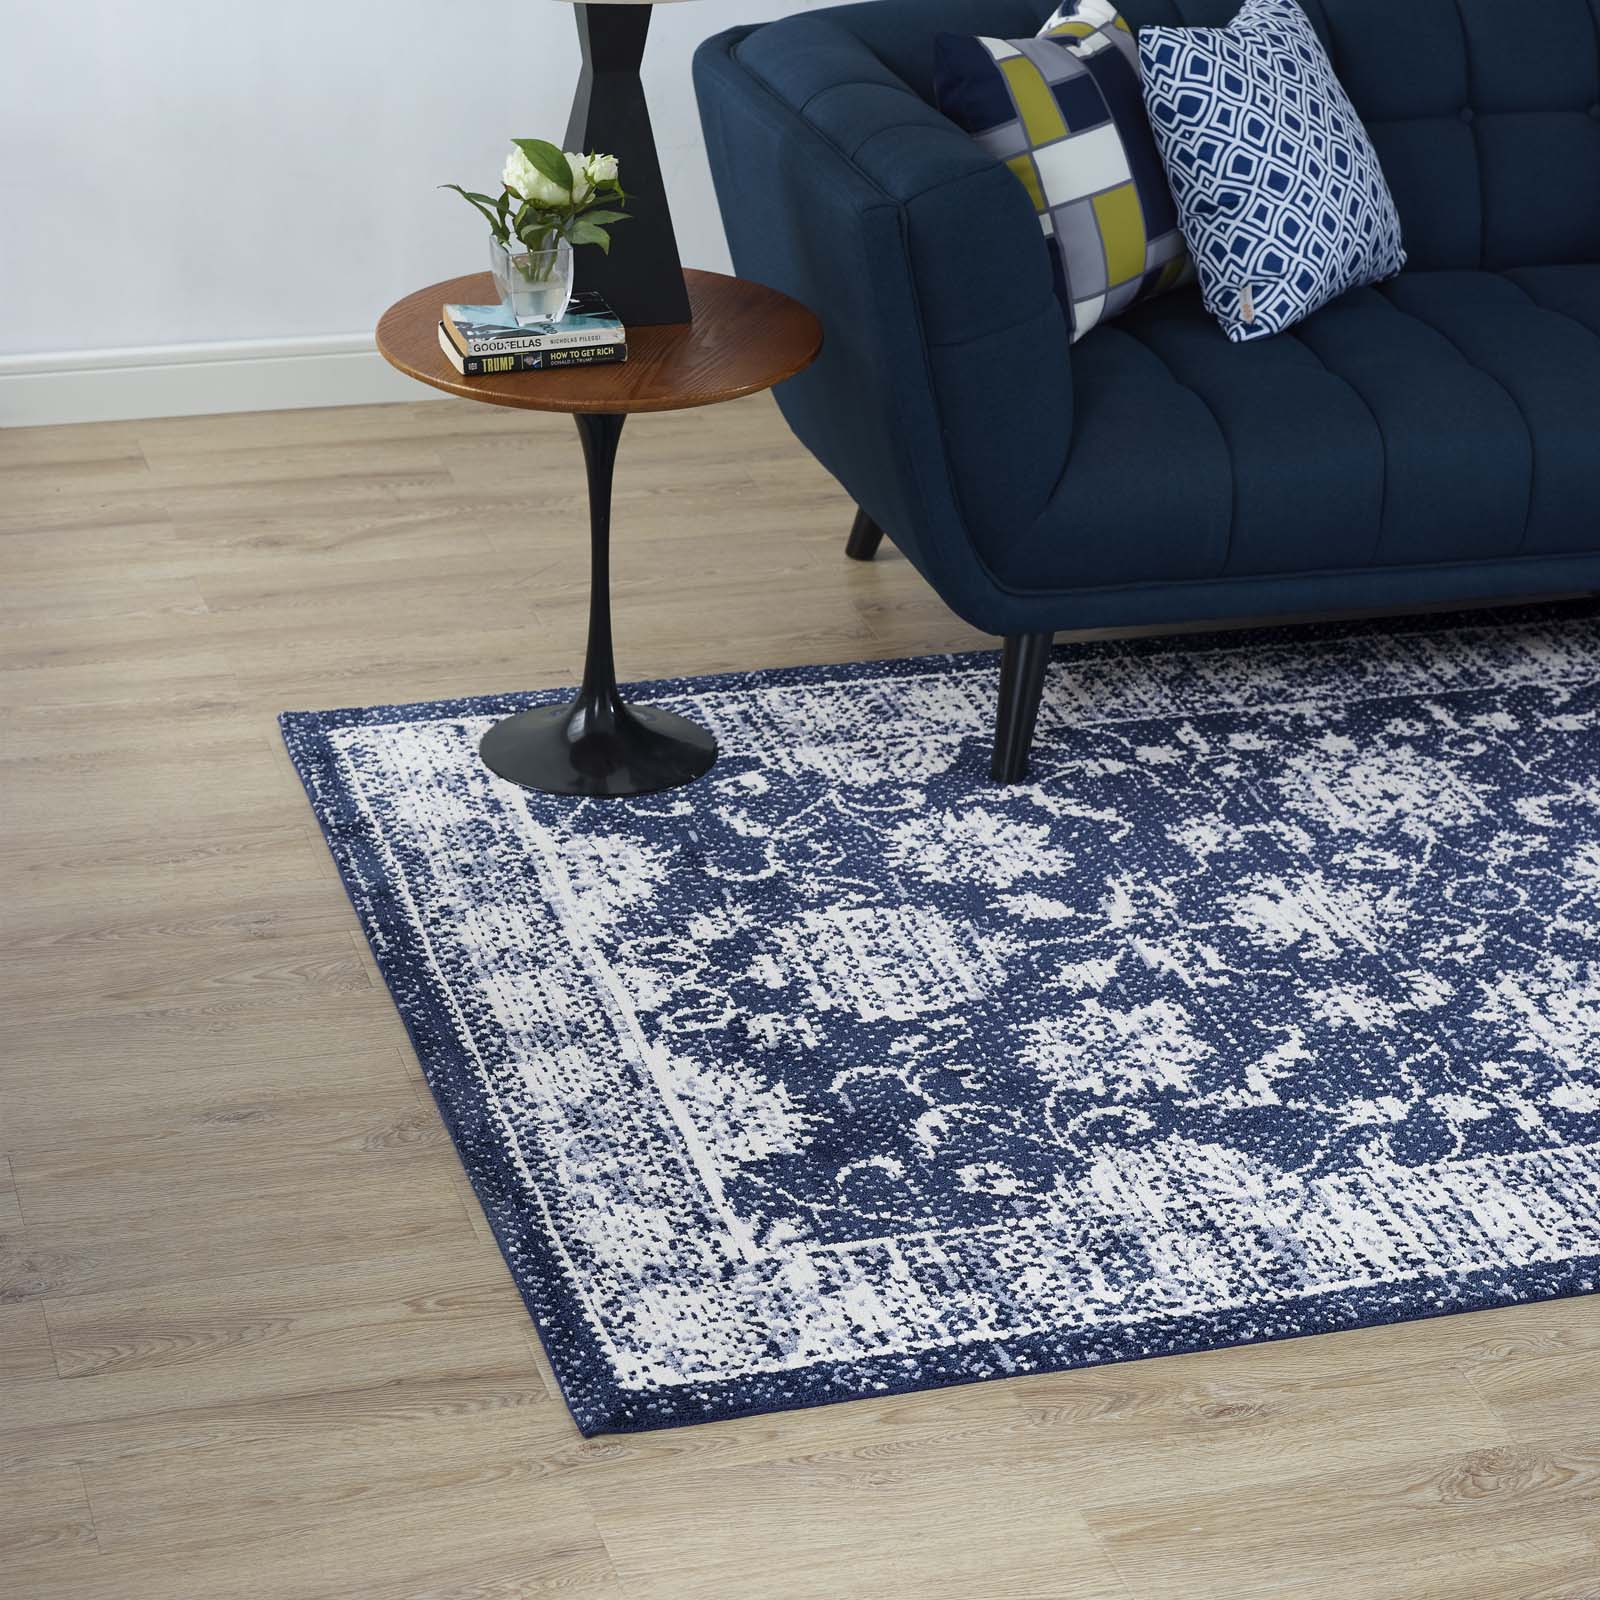 Kazia Distressed Floral Lattice 8x10 Area Rug Dark Blue and Ivory R-1020B-810